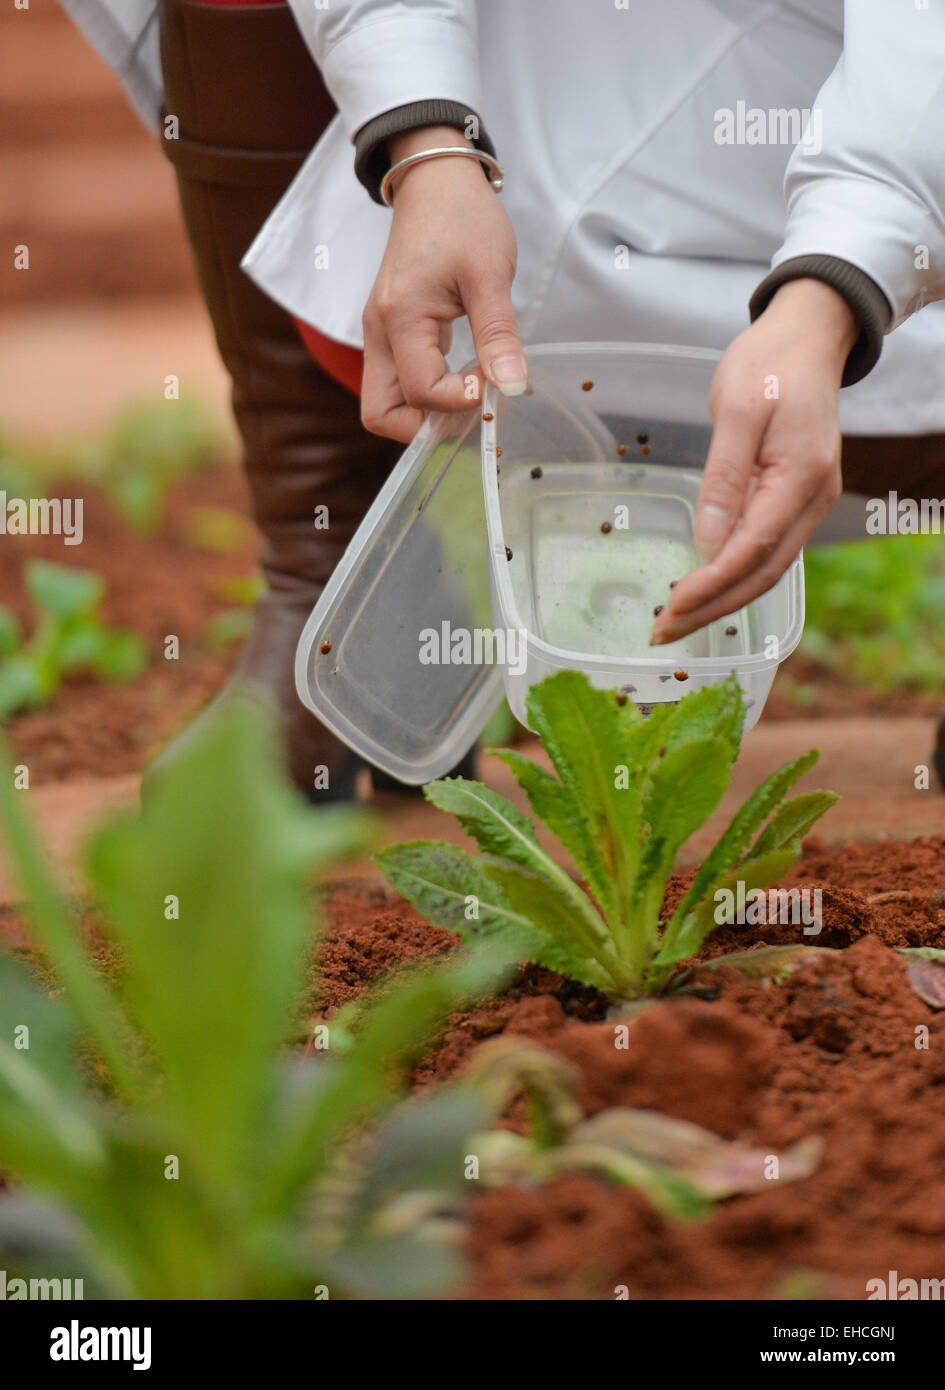 (150312) -- CHANGSHA, March 12, 2015 (Xinhua) -- A researcher release ladybird beetles to a quarantine crop greenhouse - Stock Image